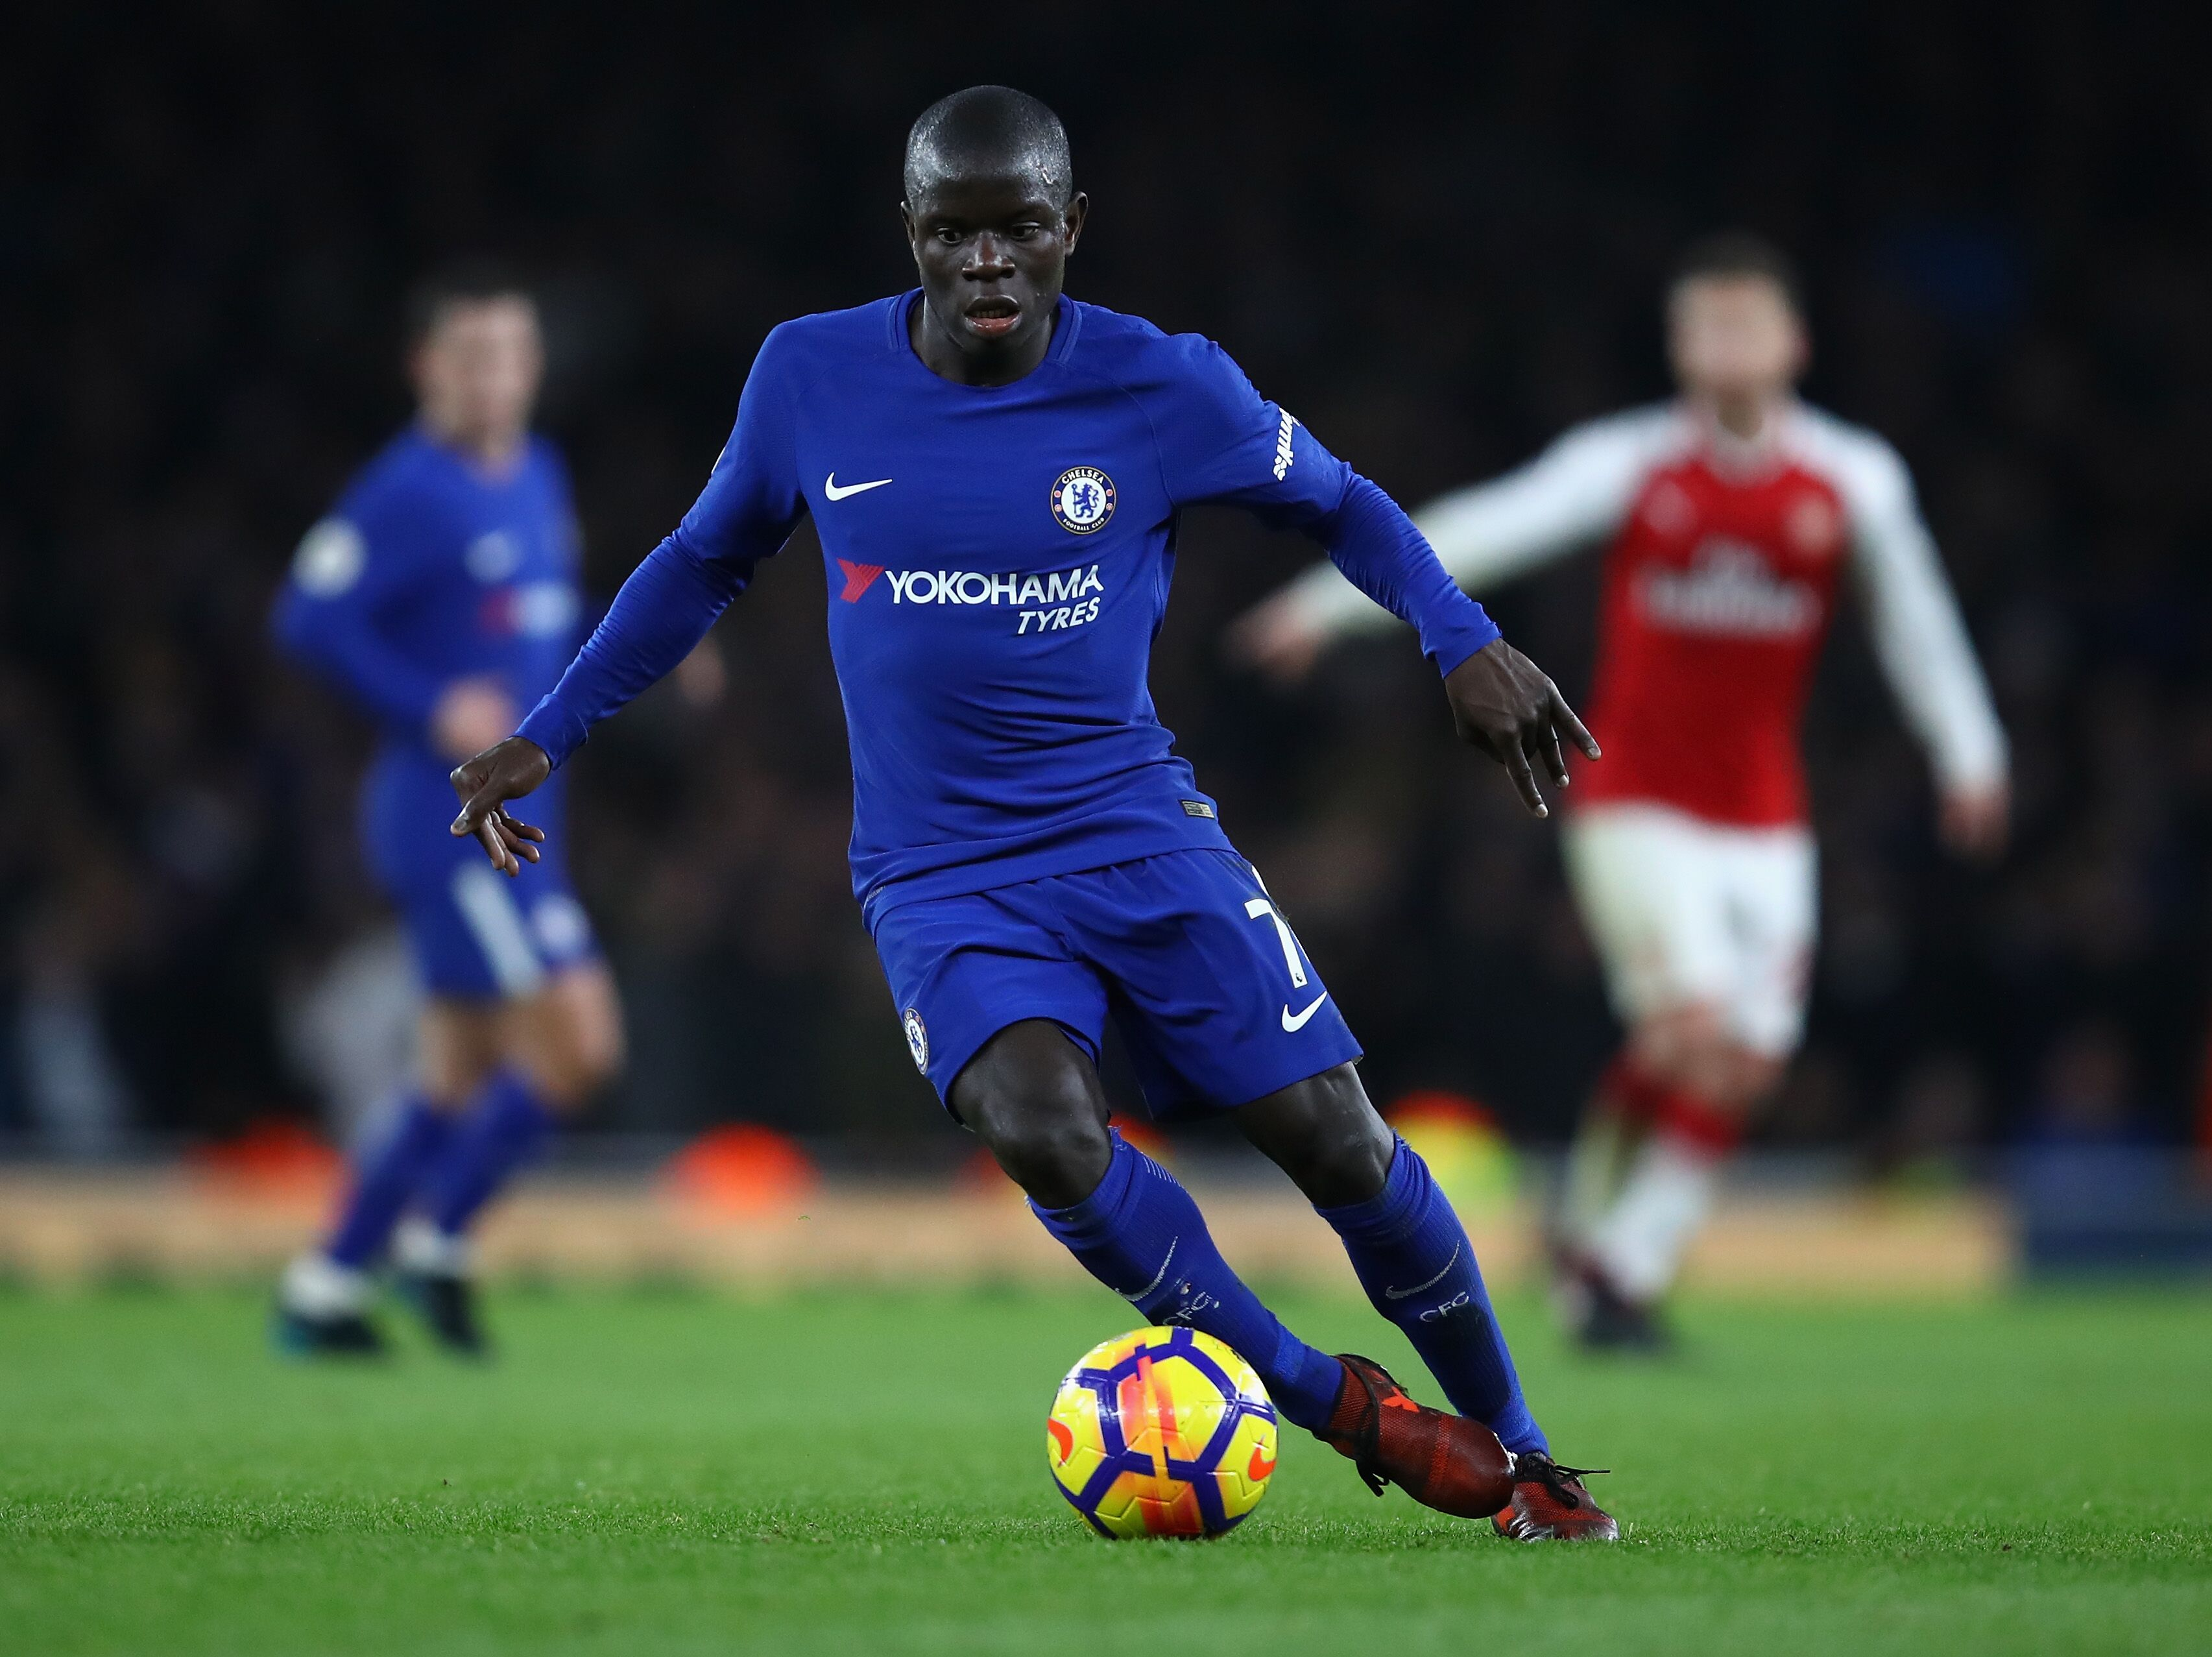 Chelsea Engine N'Golo Kante Is The Most Valuable (and Best